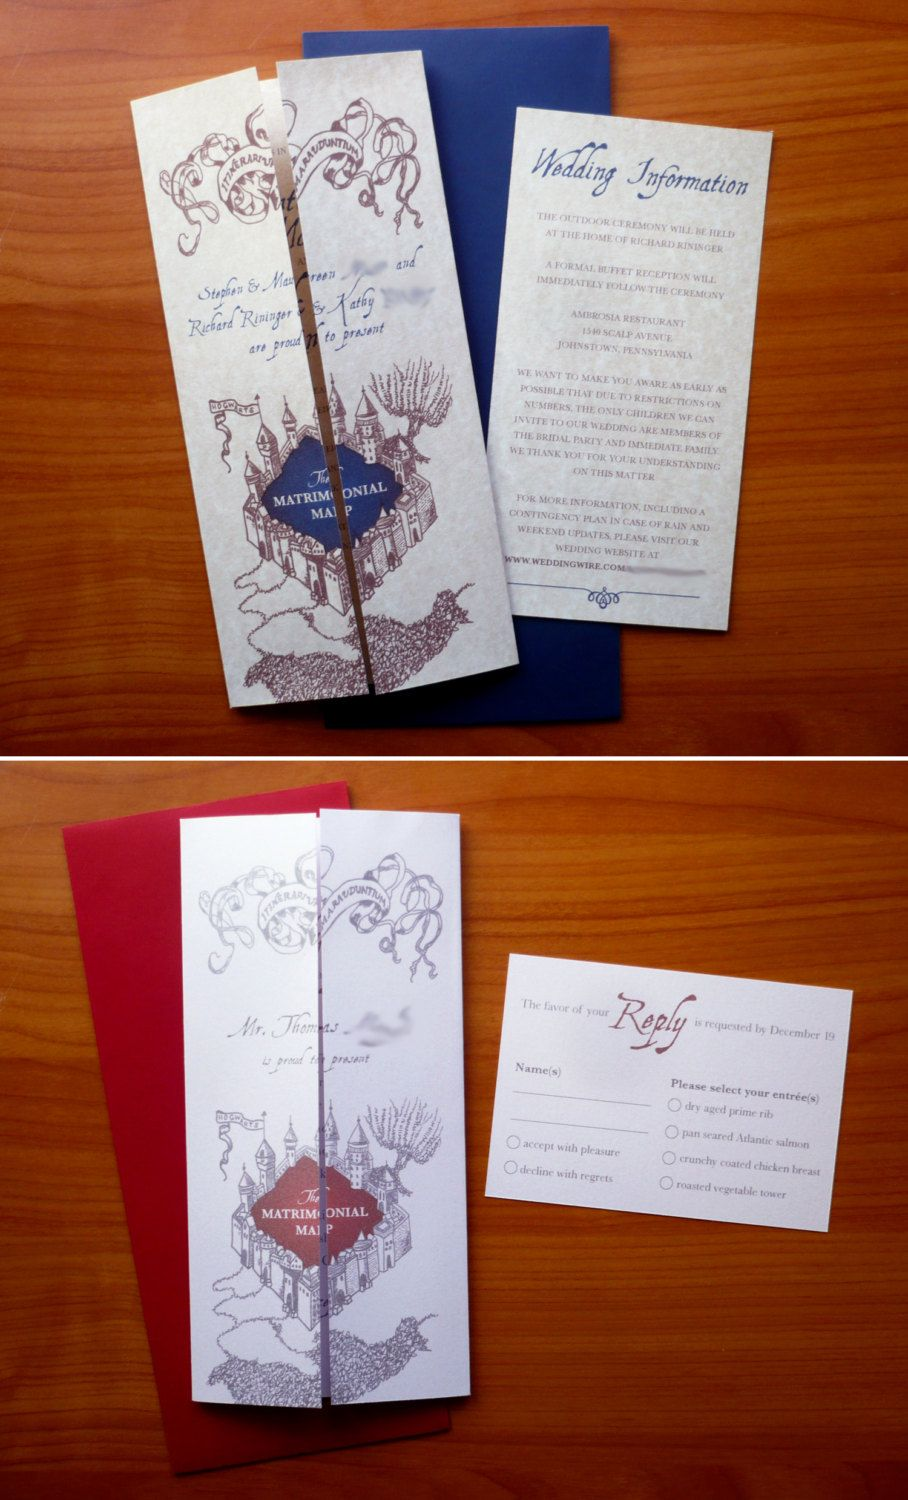 hogwarts express ticket save the dates! these make me want a harry, Wedding invitations